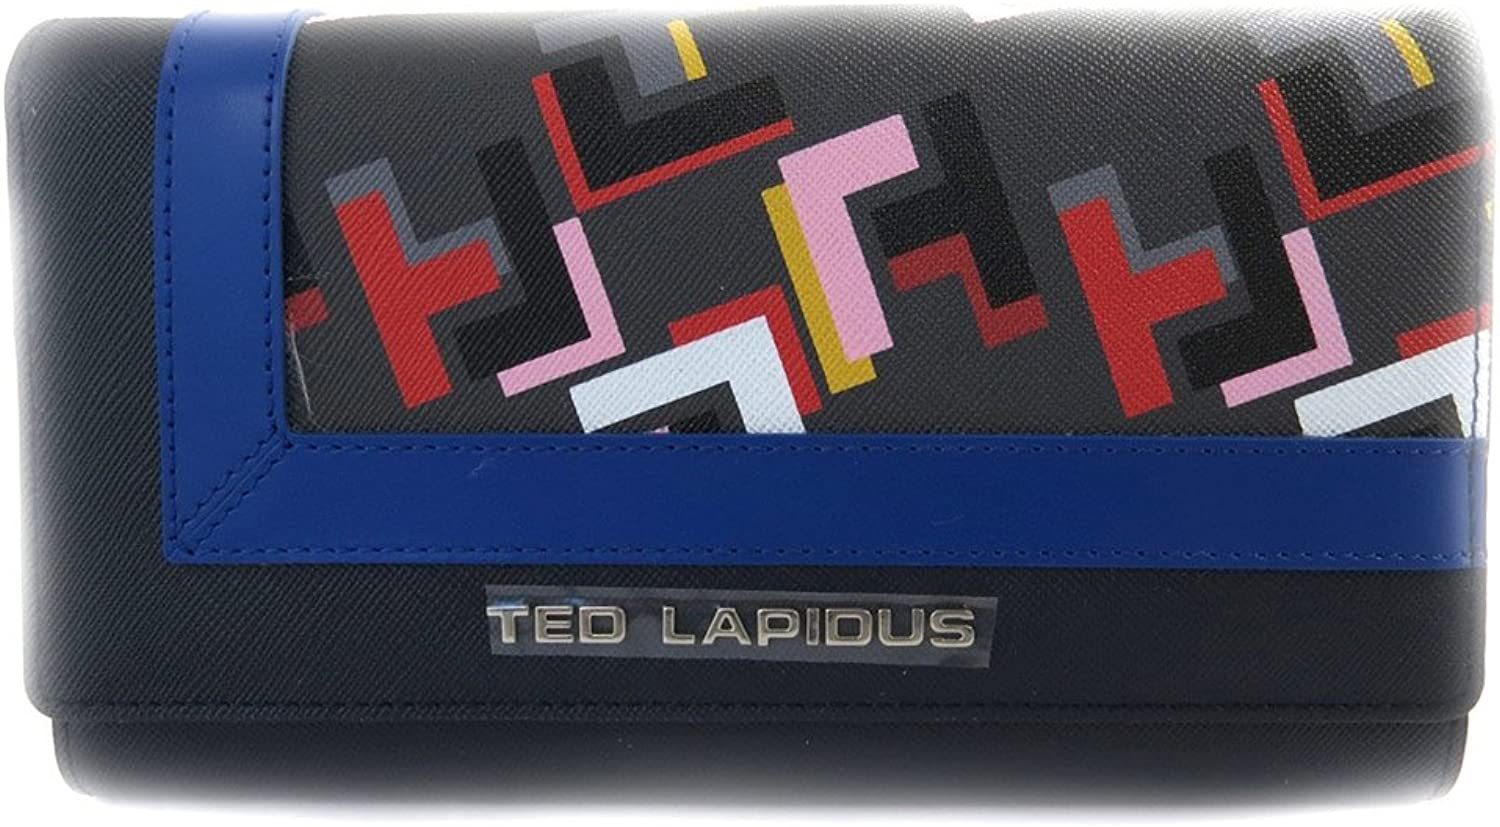 Wallet + checkbook holder 'Ted Lapidus' bluee.